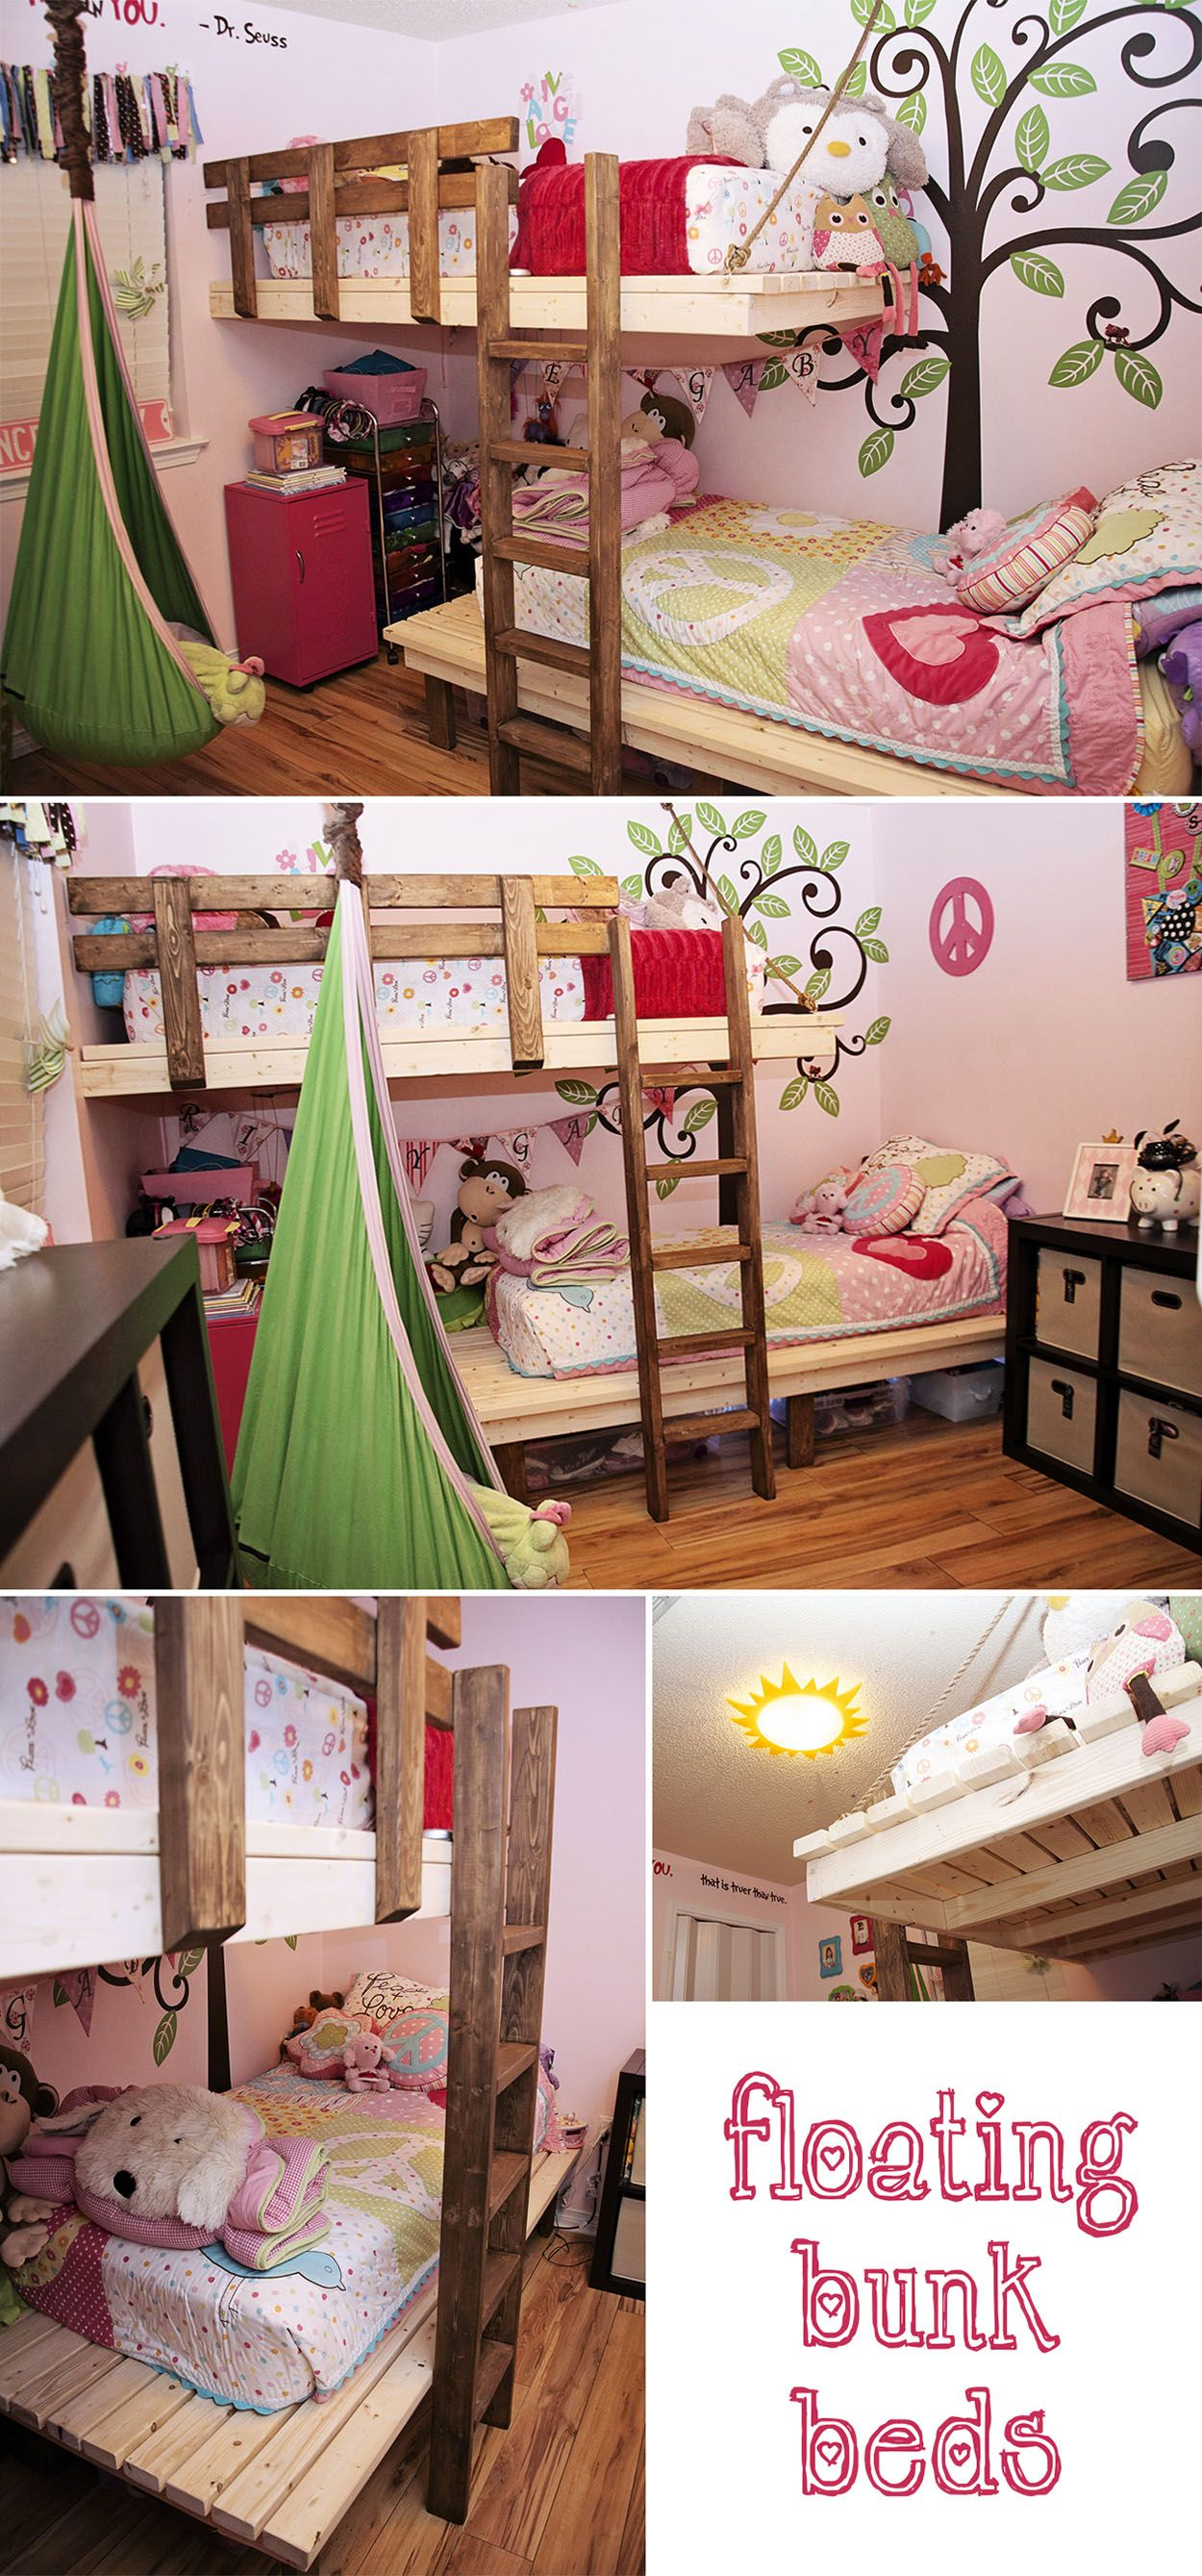 Pin By Madden Furniture On Kids Room Bunk Beds Bunk Bed Designs Kids Bunk Beds